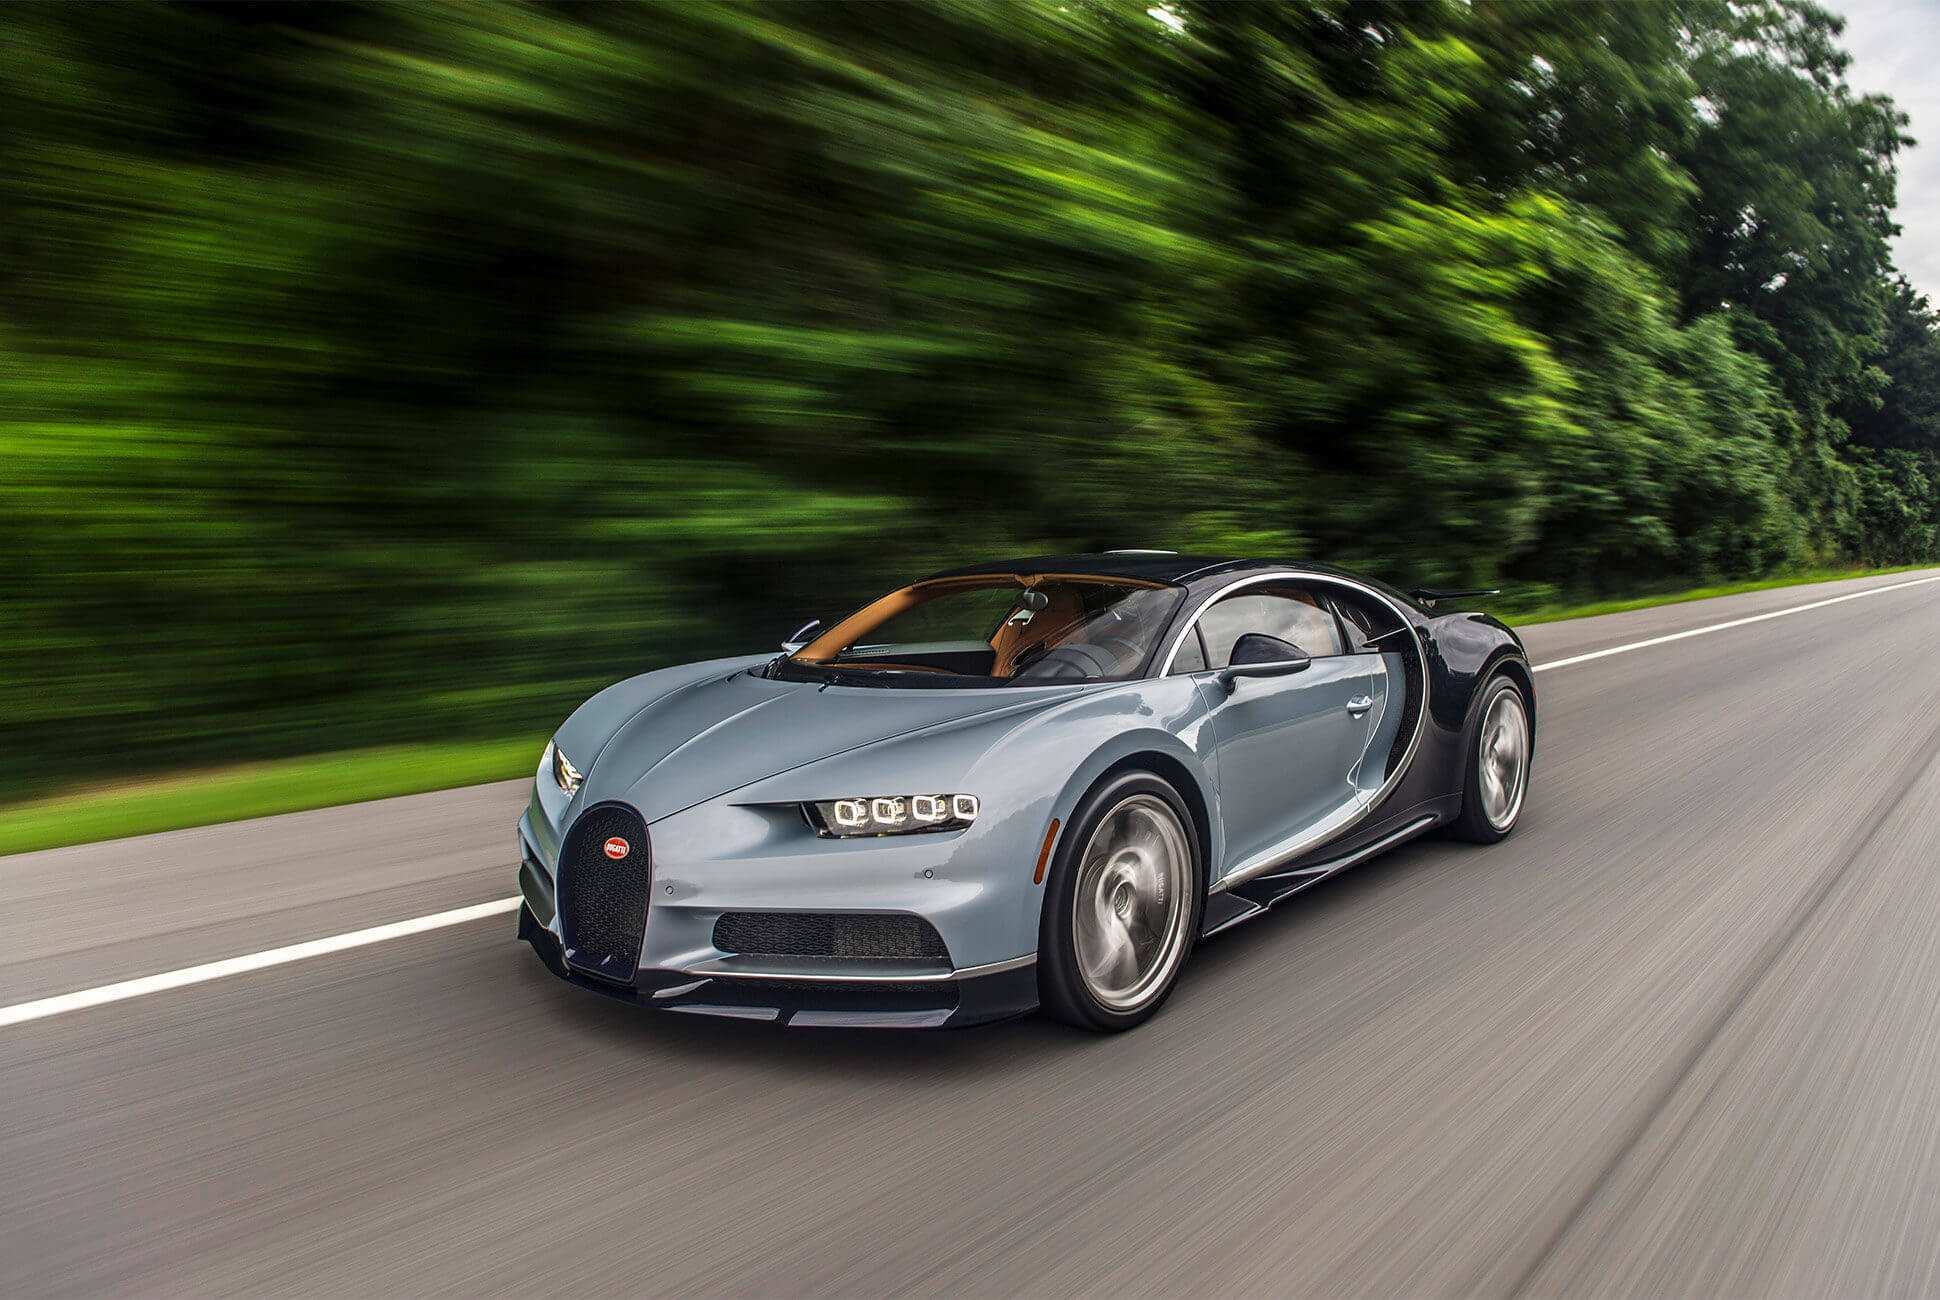 15 All New 2020 Bugatti Veyron Specs And Review